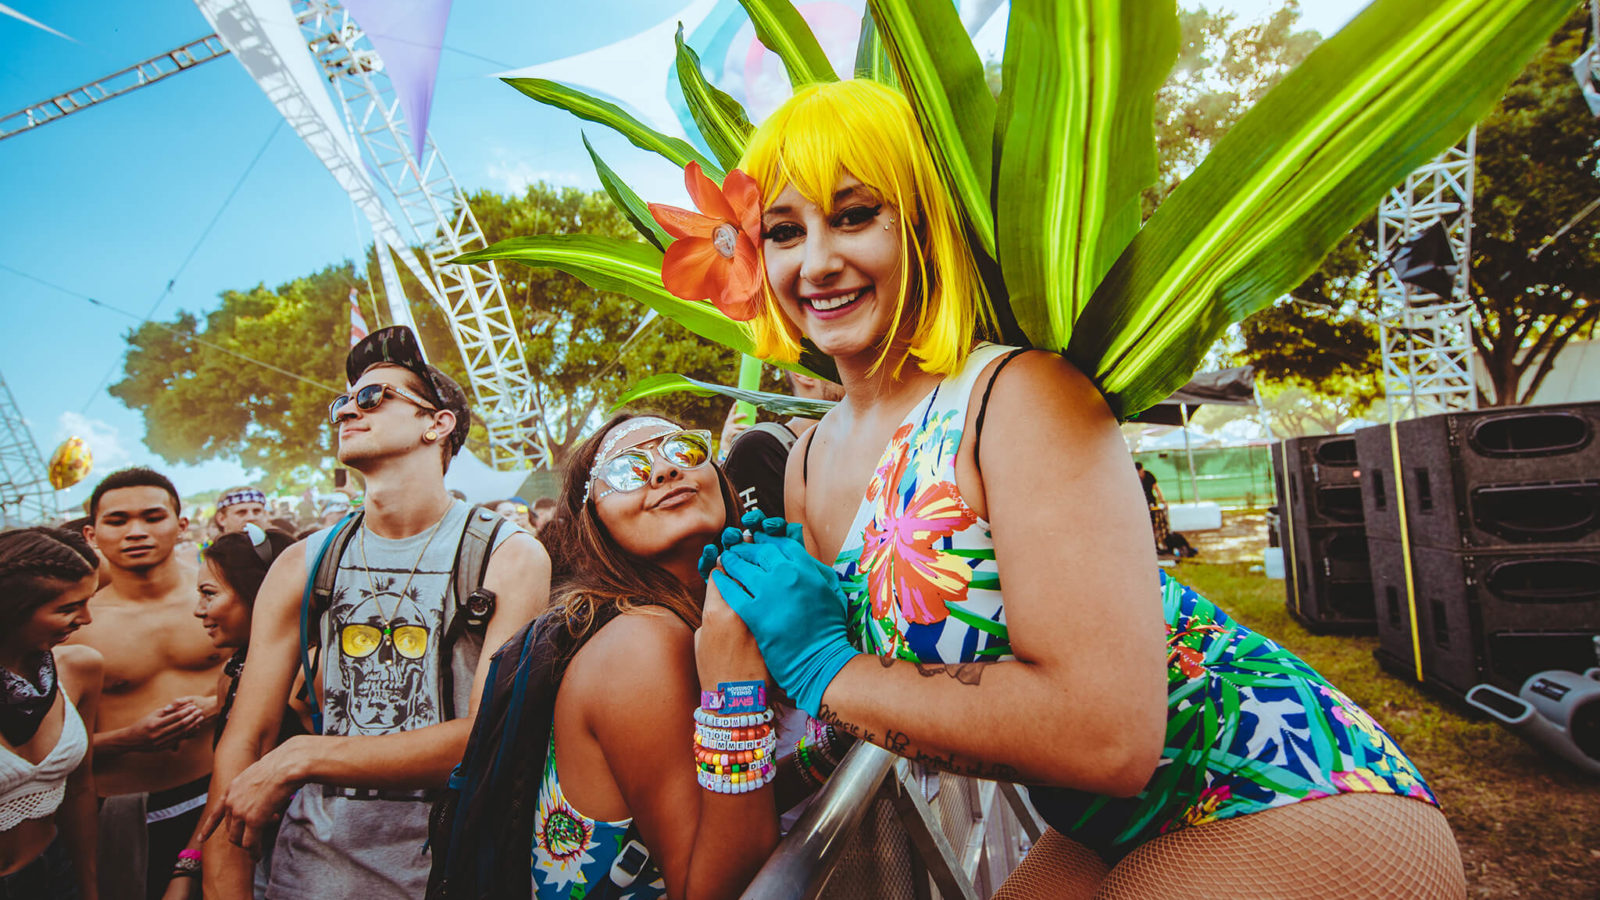 Costumed performer and fans at Sunset Music Festival 2016